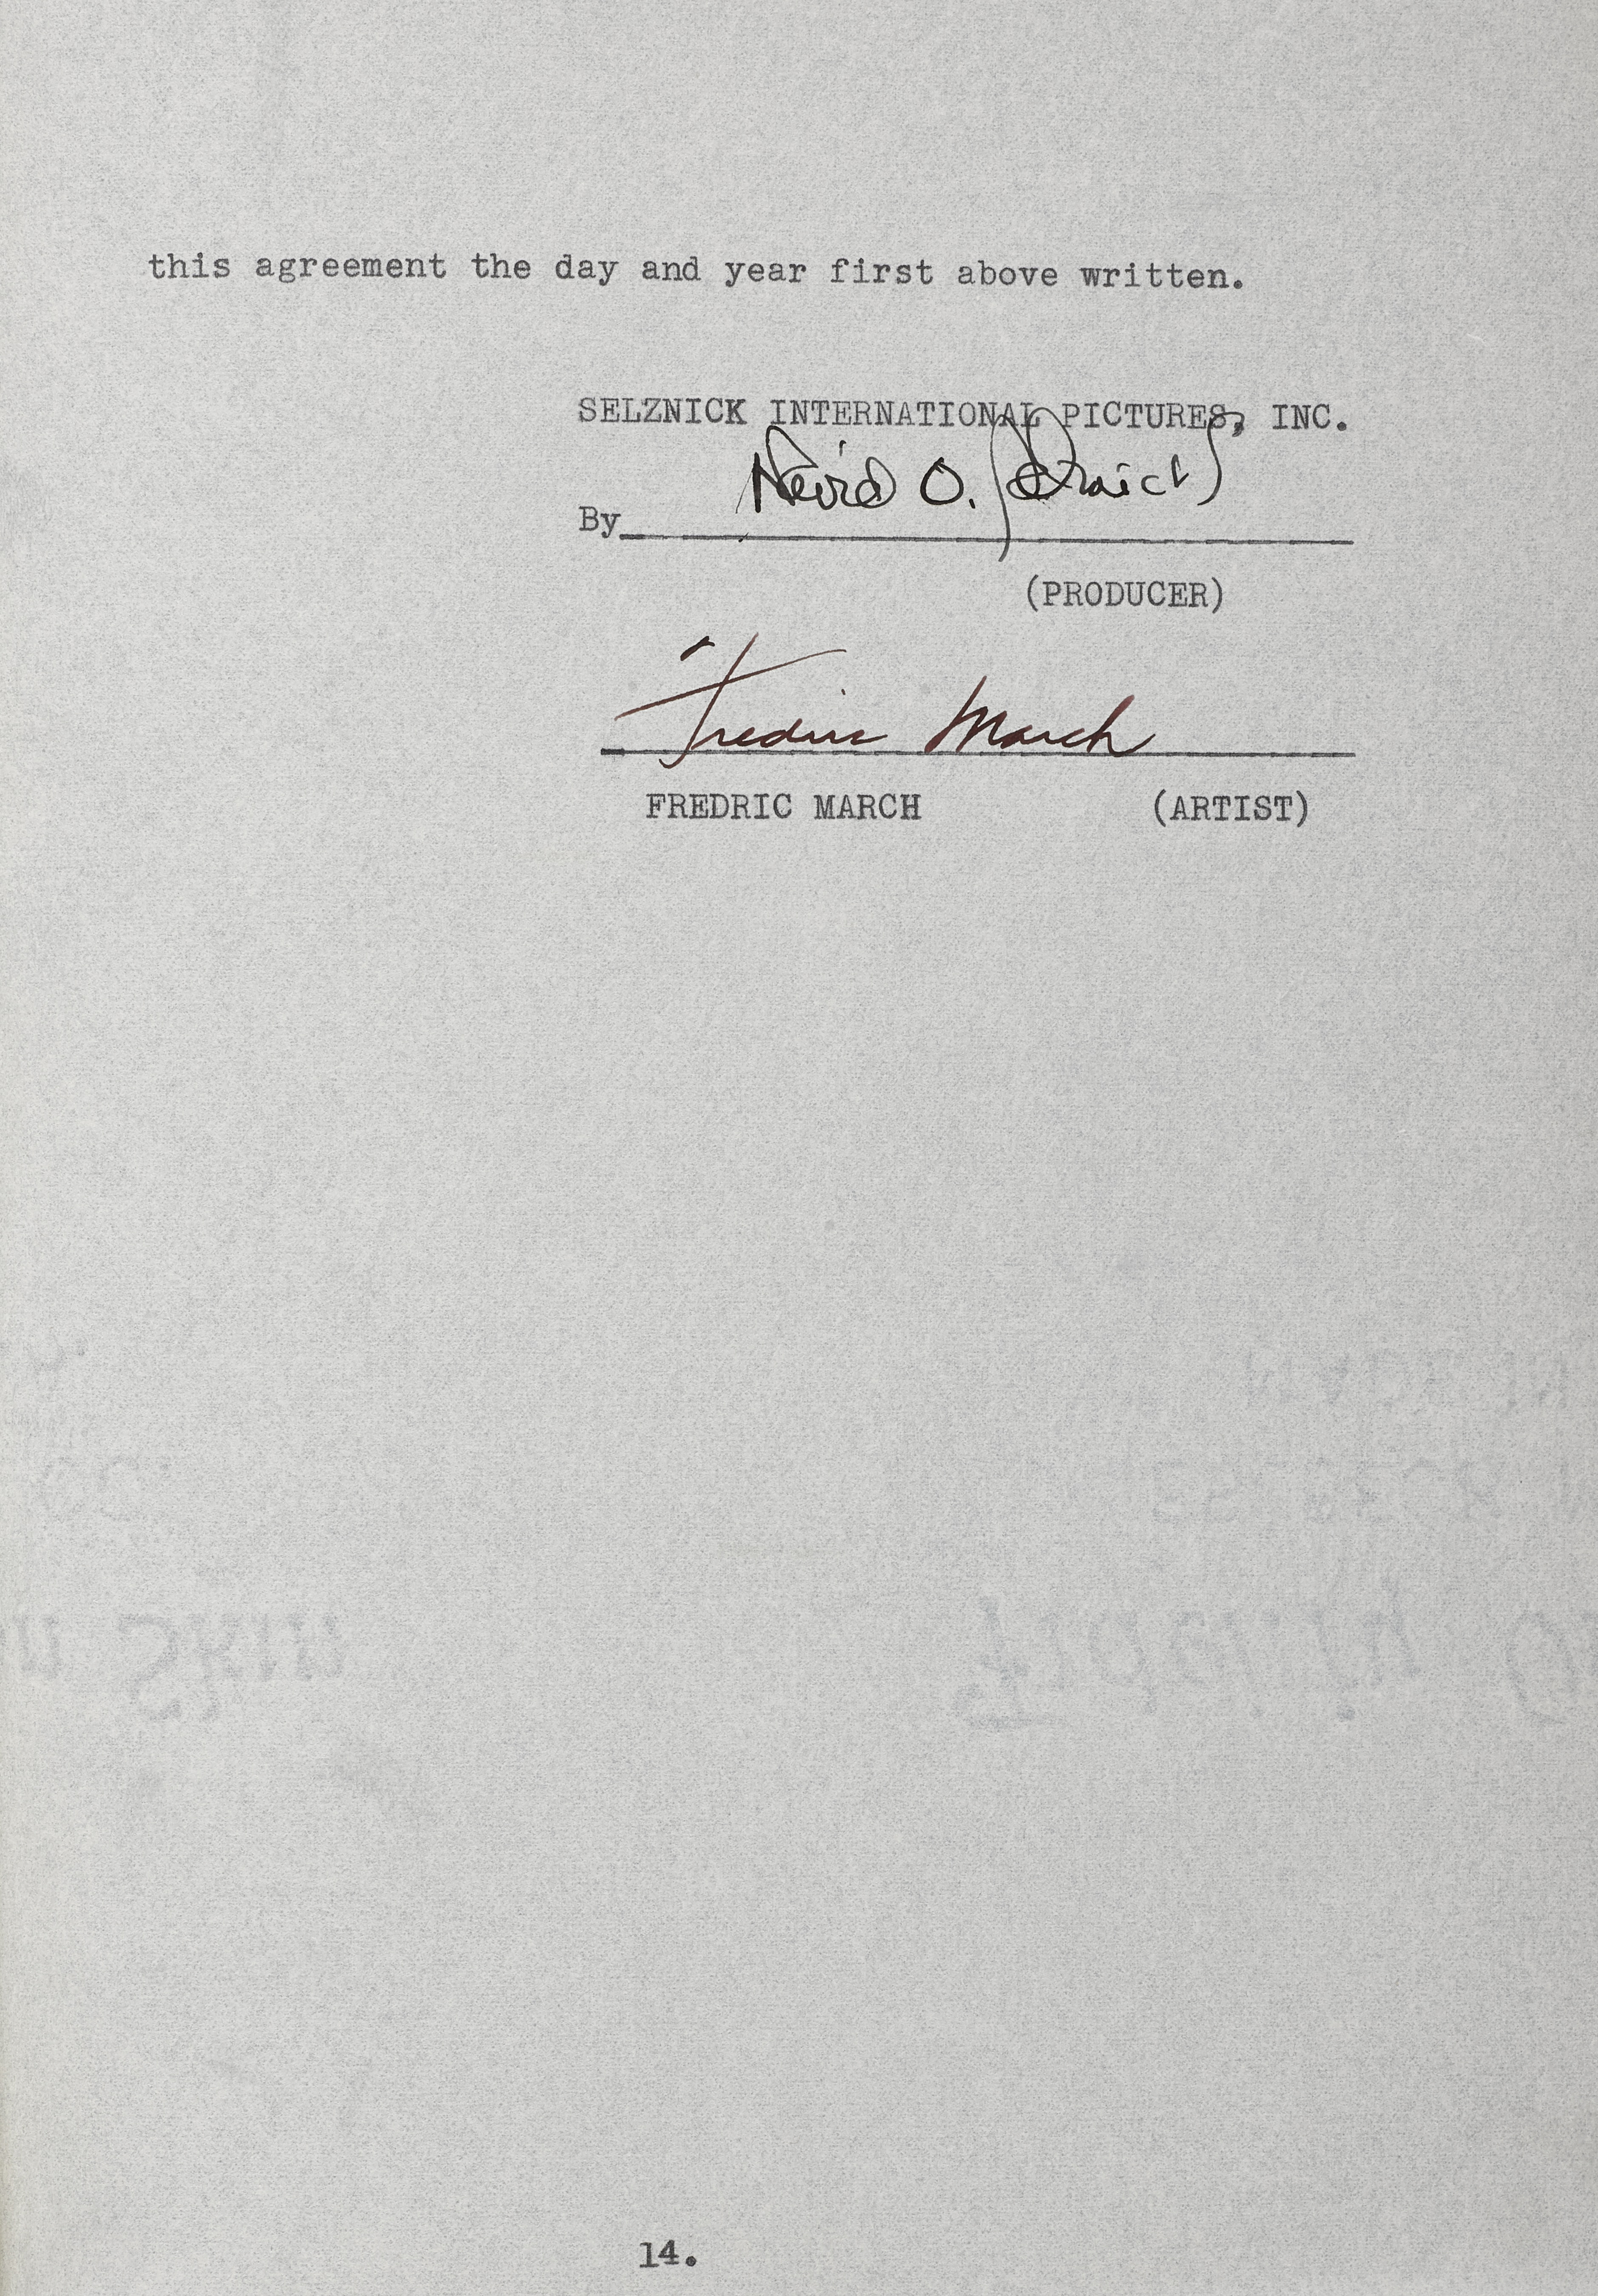 A Fredric March signed contract for A Star is Born